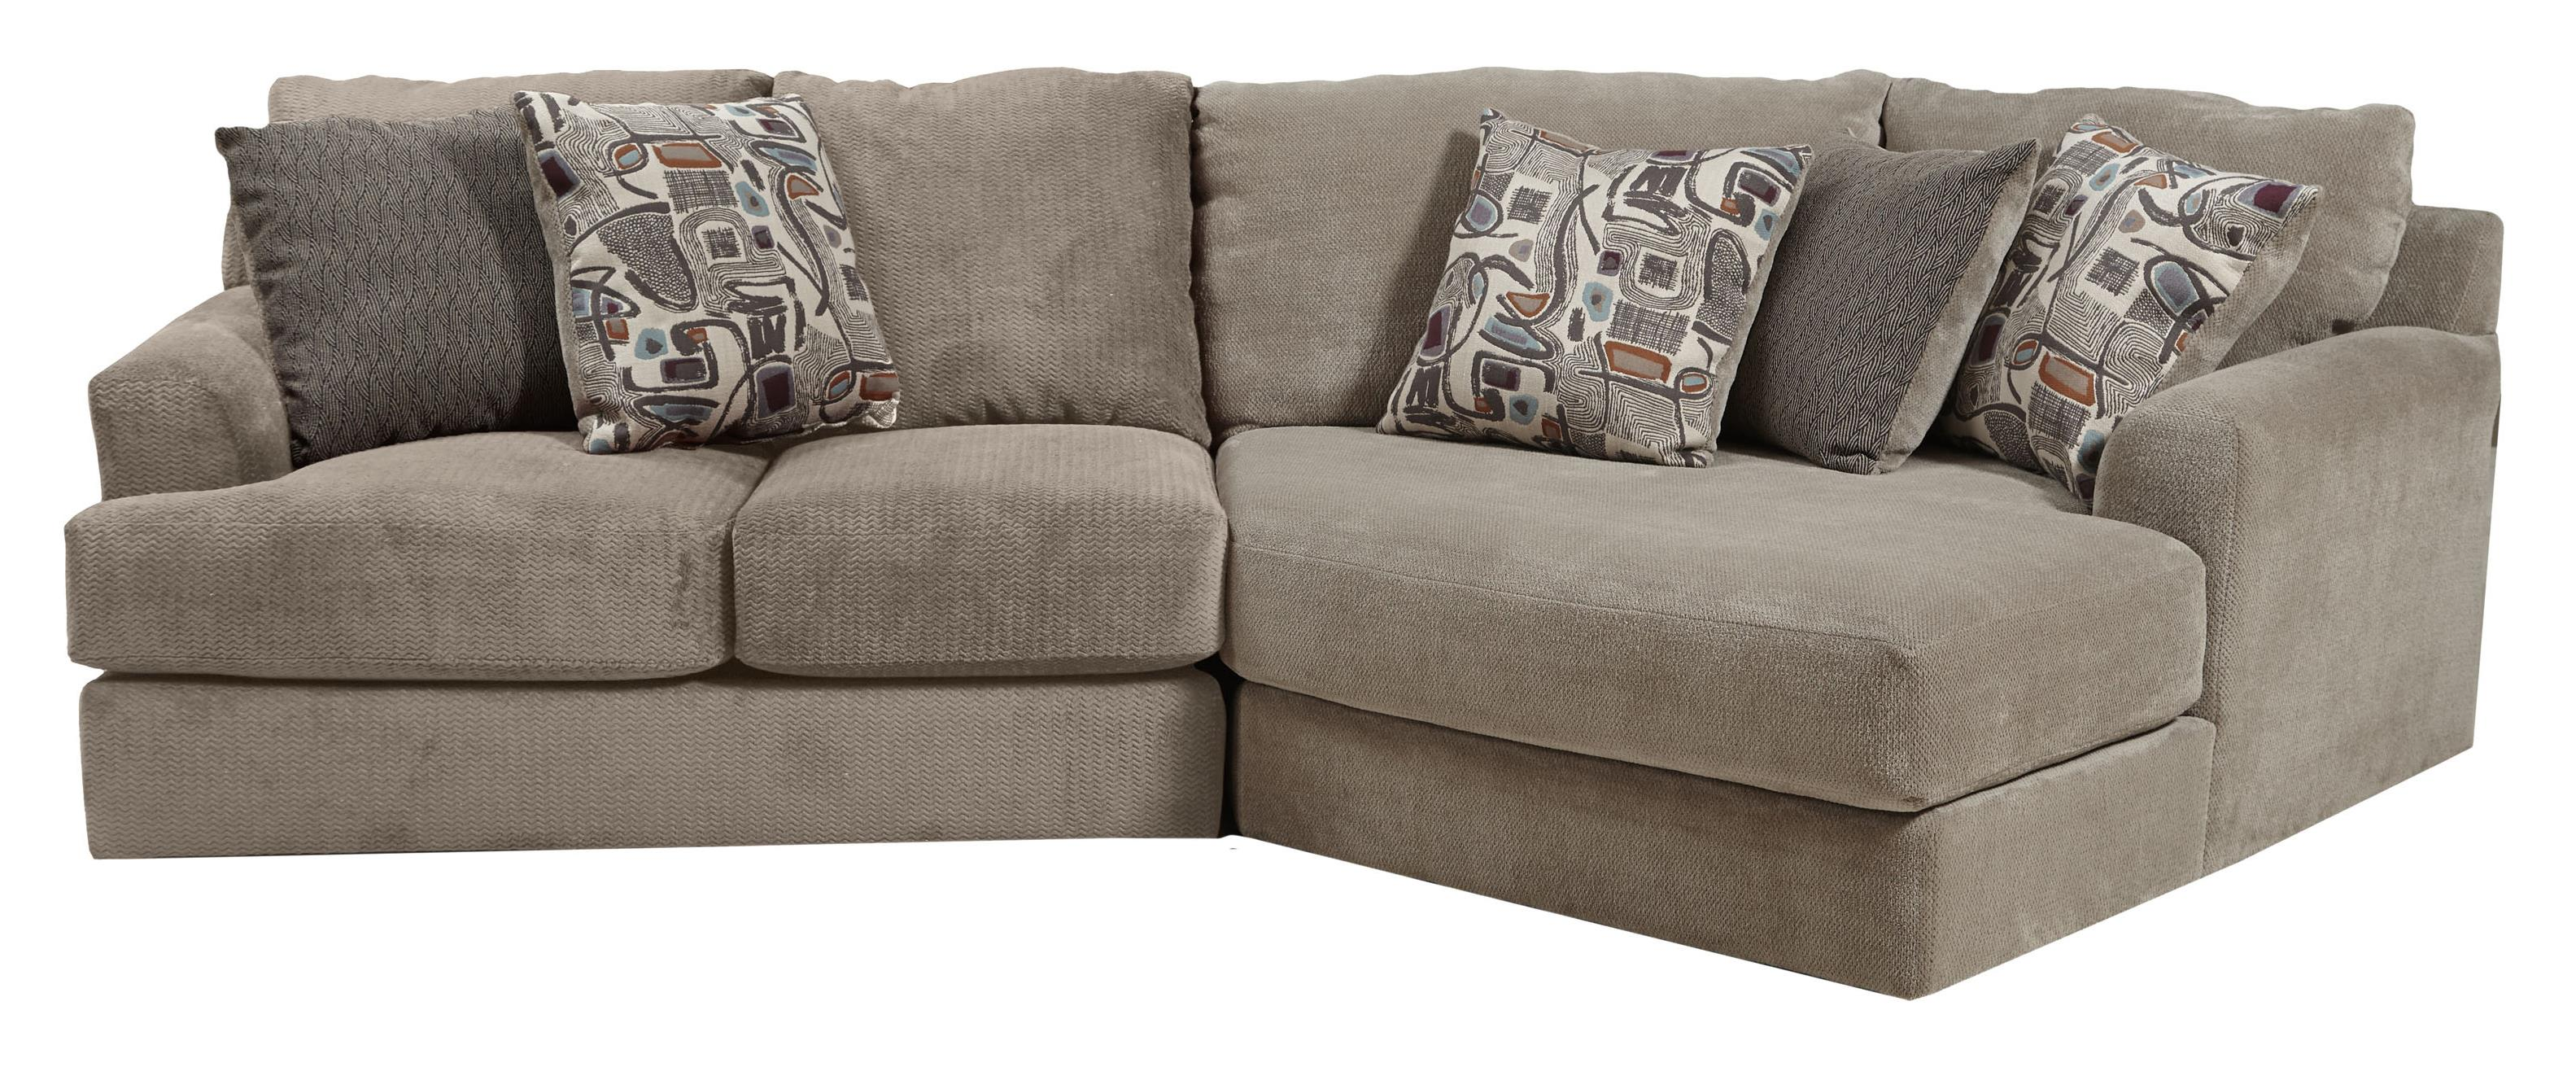 Small three seat sectional sofa by jackson furniture for Sectional sofas wolf furniture